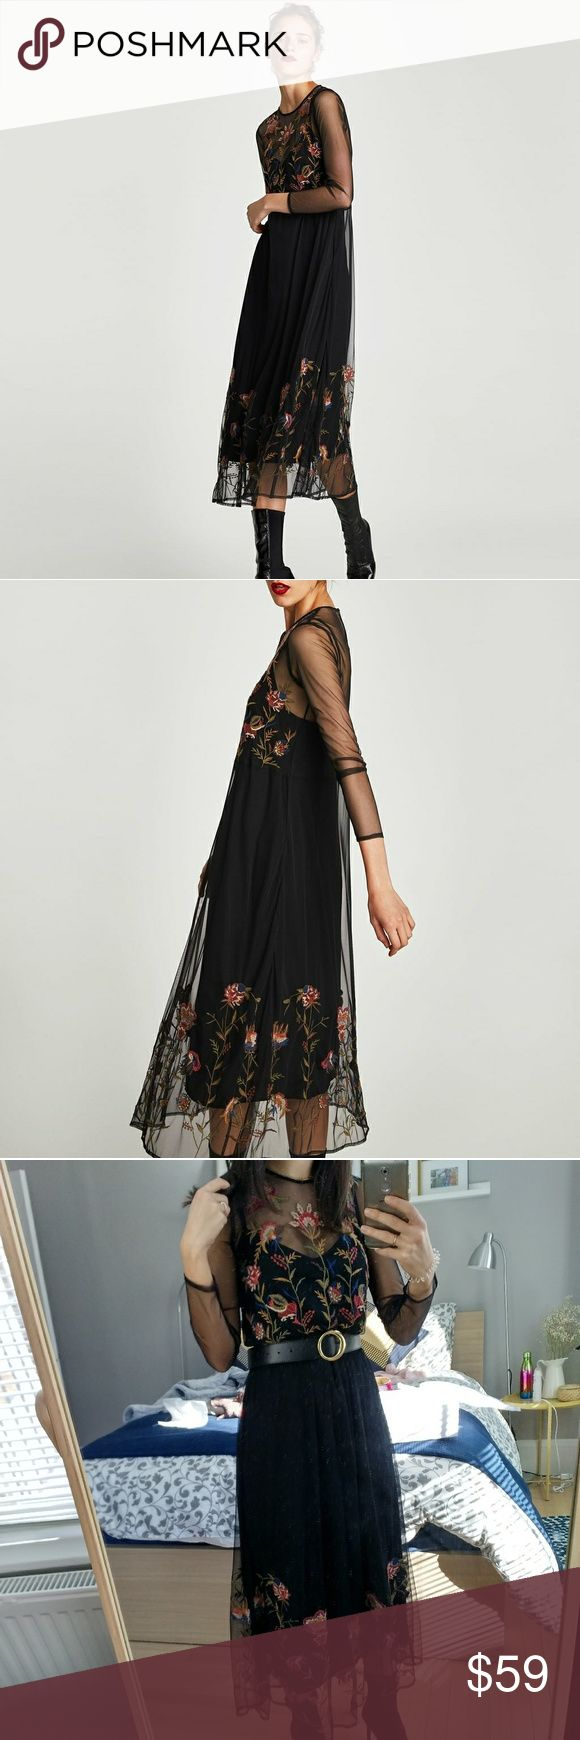 Special dress Lovely dress with flowers. Fixed price Zara Dresses Midi